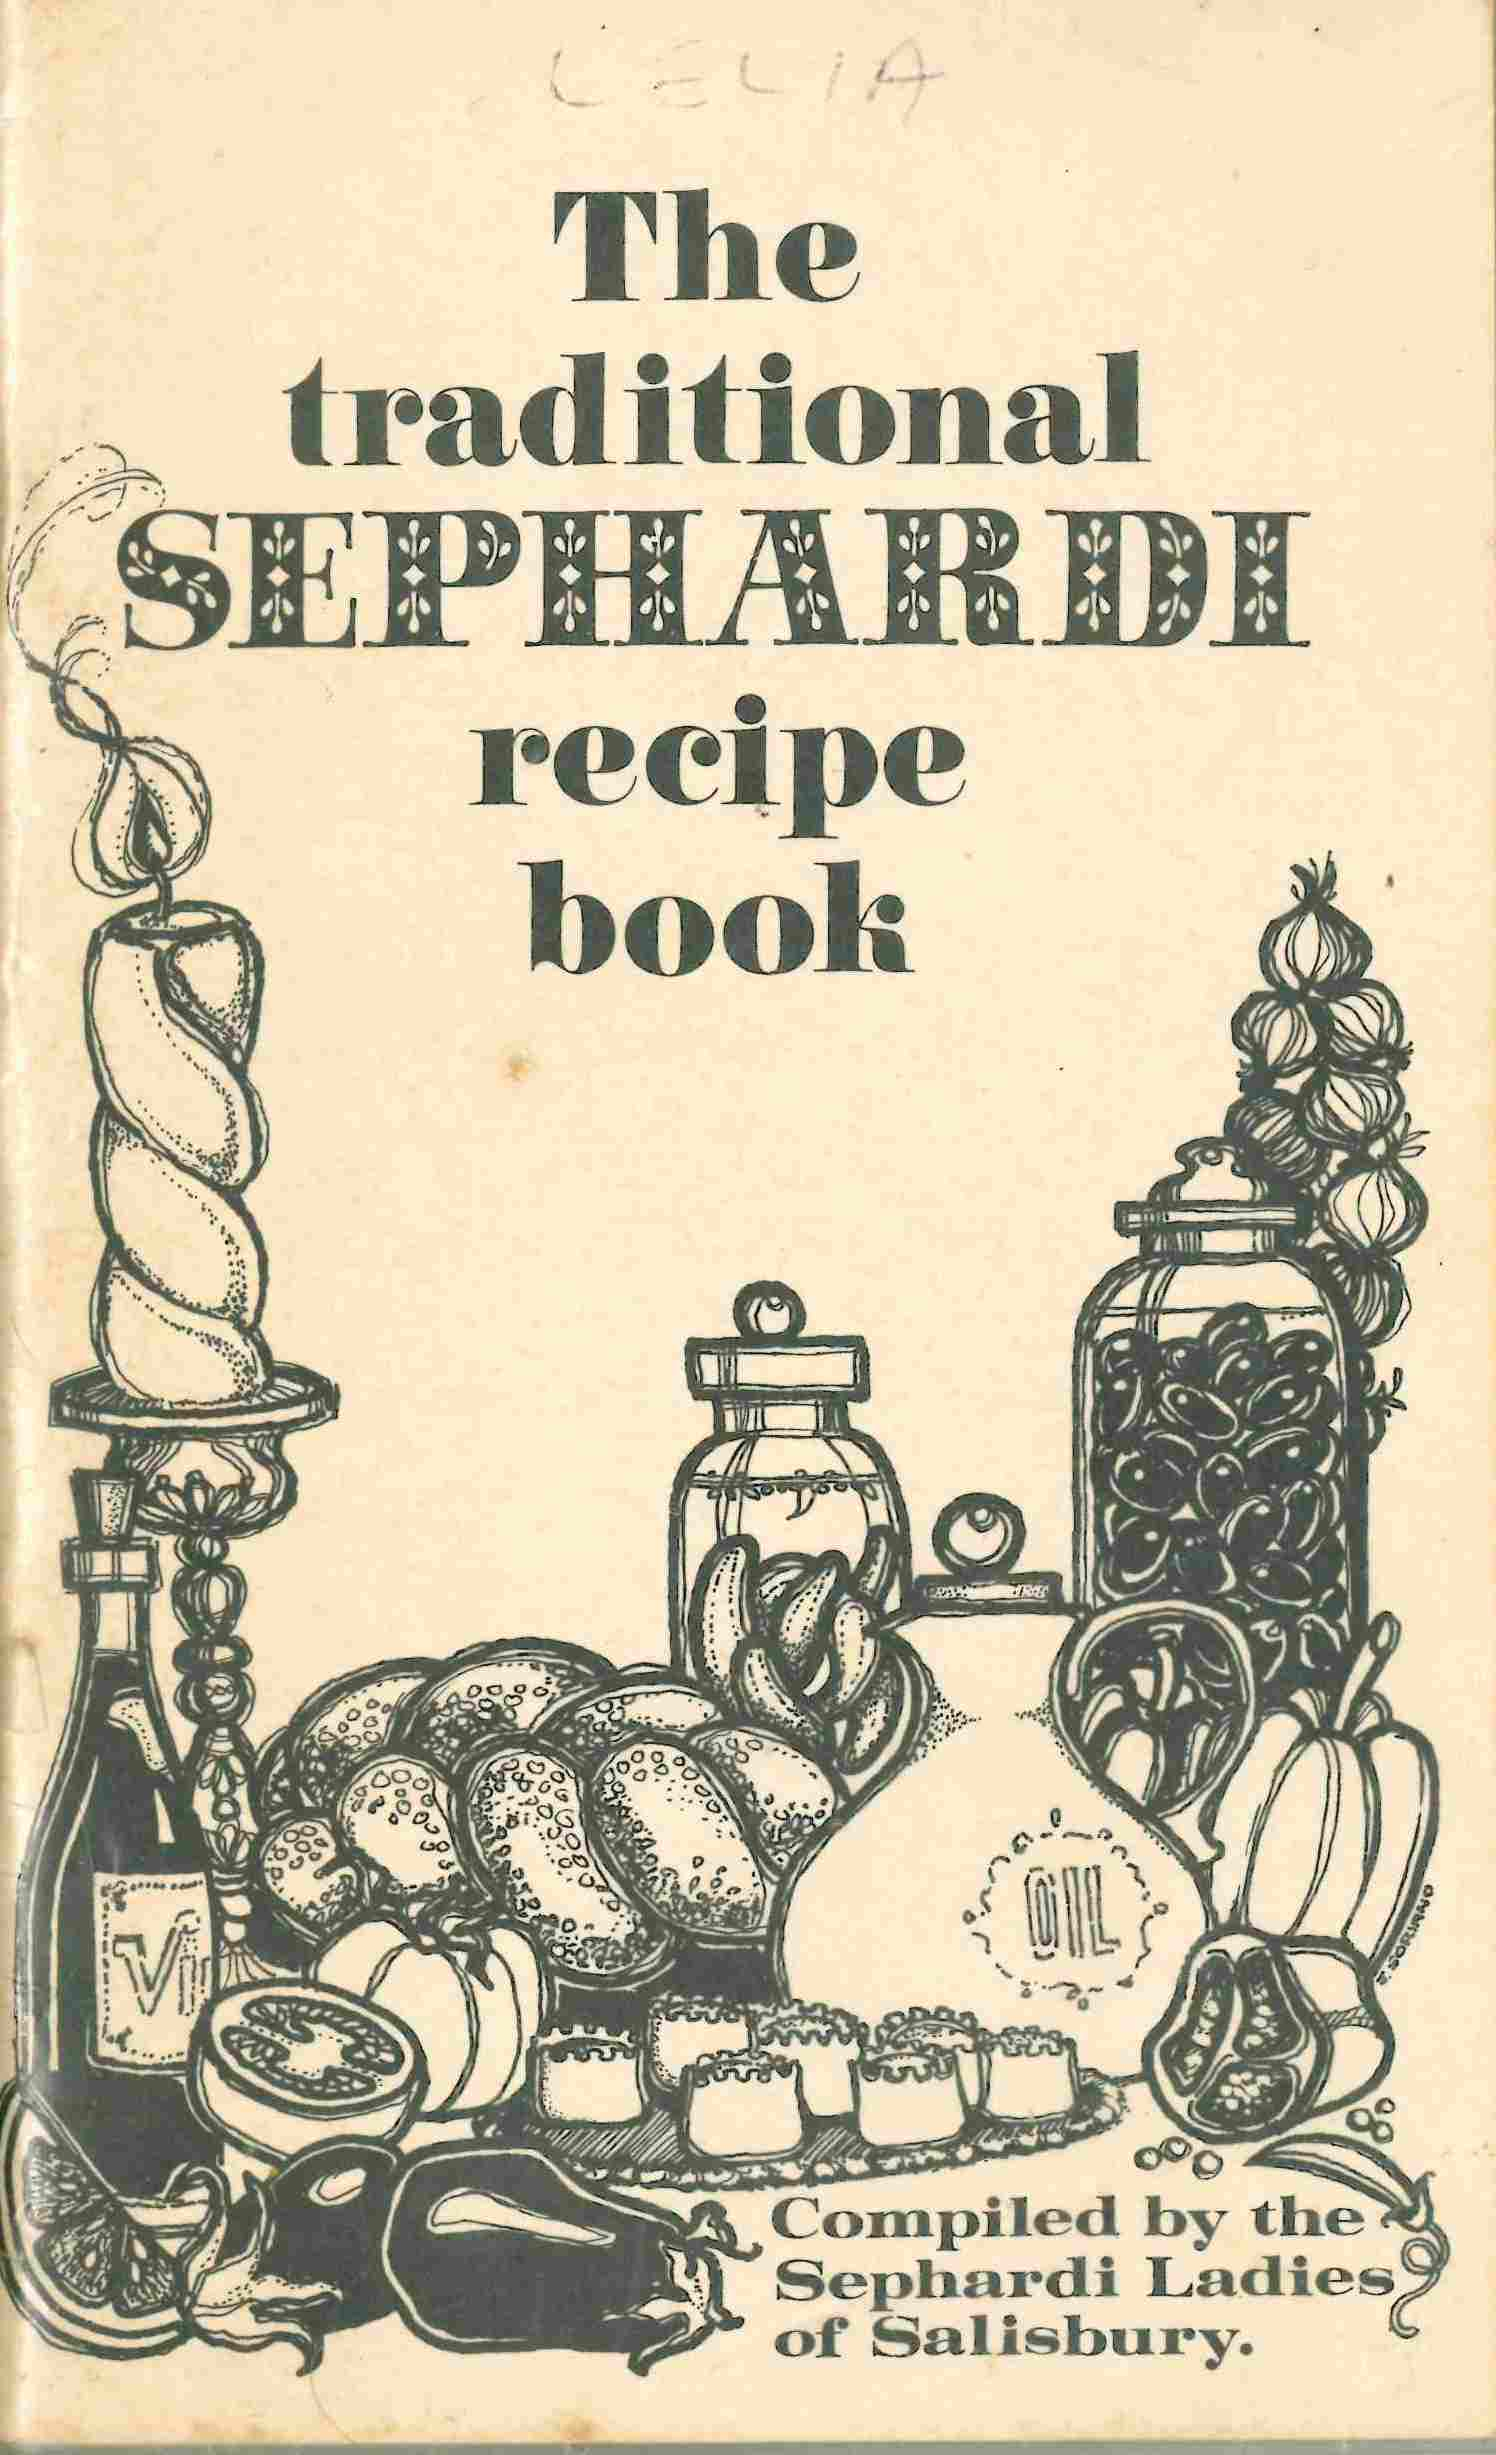 The Traditional Sephardi recipe book